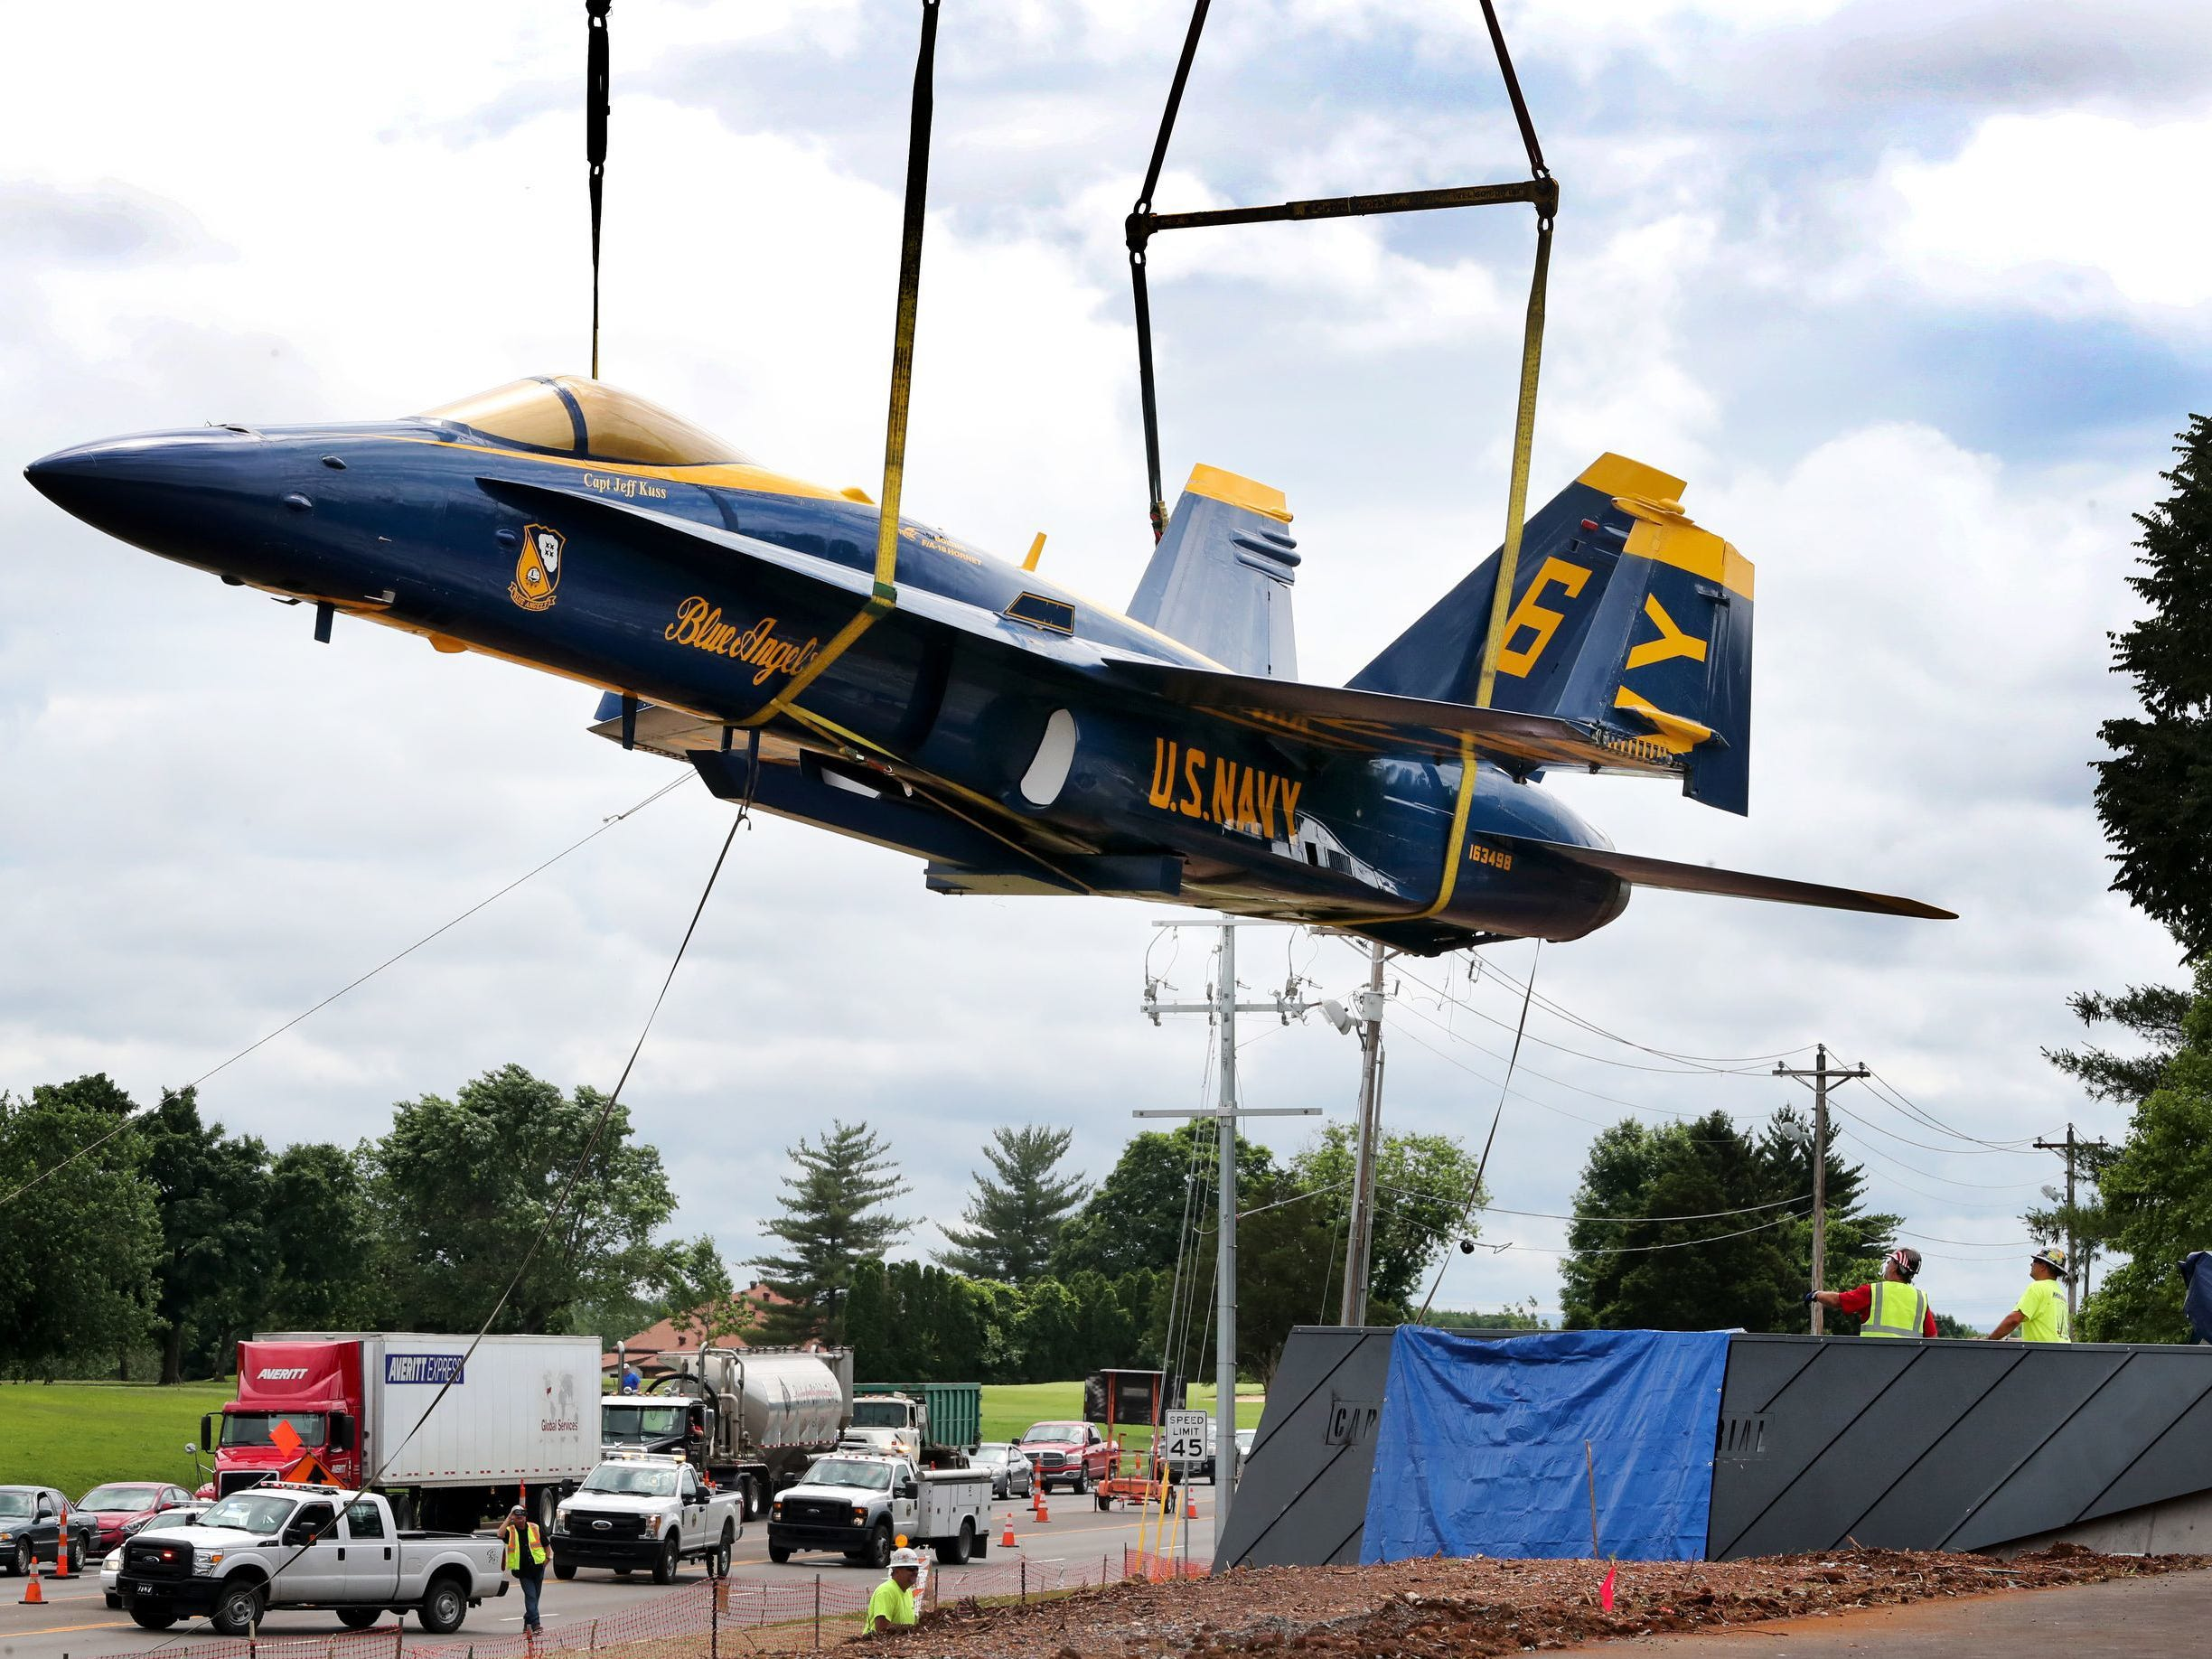 A Blue Angel F/A-18C Hornet was hoisted in the air and placed on a pedestal as it was installed at the memorial for Blue Angels pilot Capt. Jeff Kuss in Lee Victory Recreation Park, on Friday, June, 1 2018.